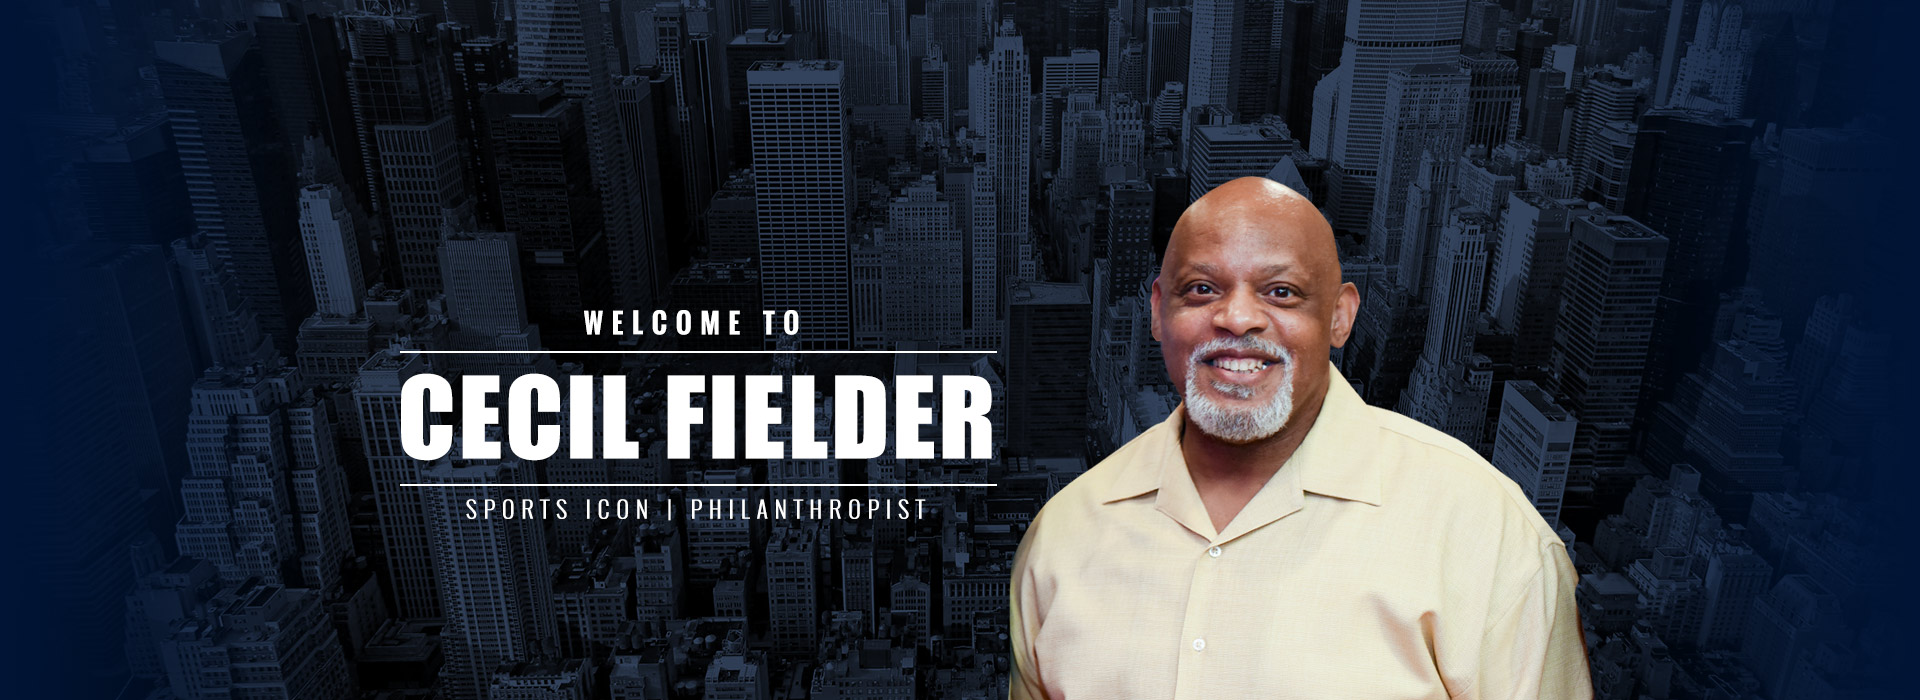 cecil fielder slider